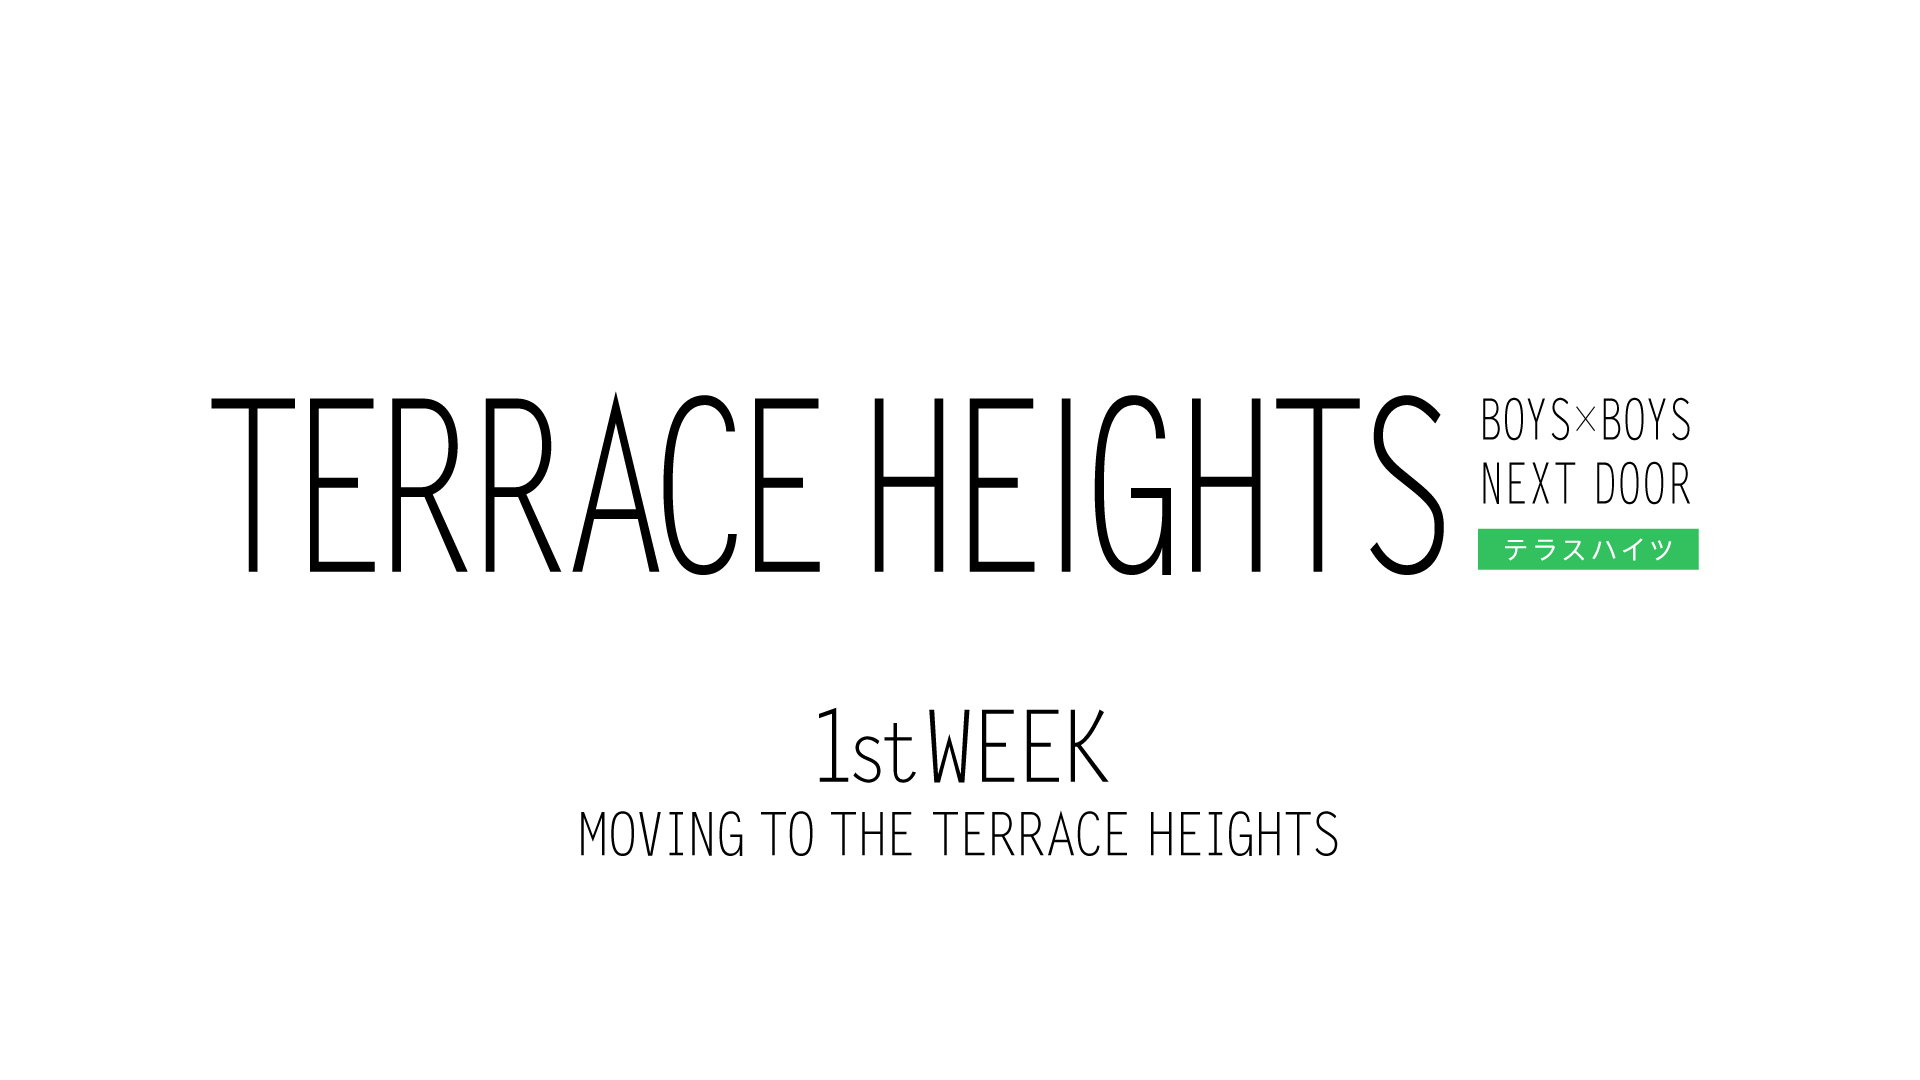 TERRACE HEIGHTS 1st WEEK